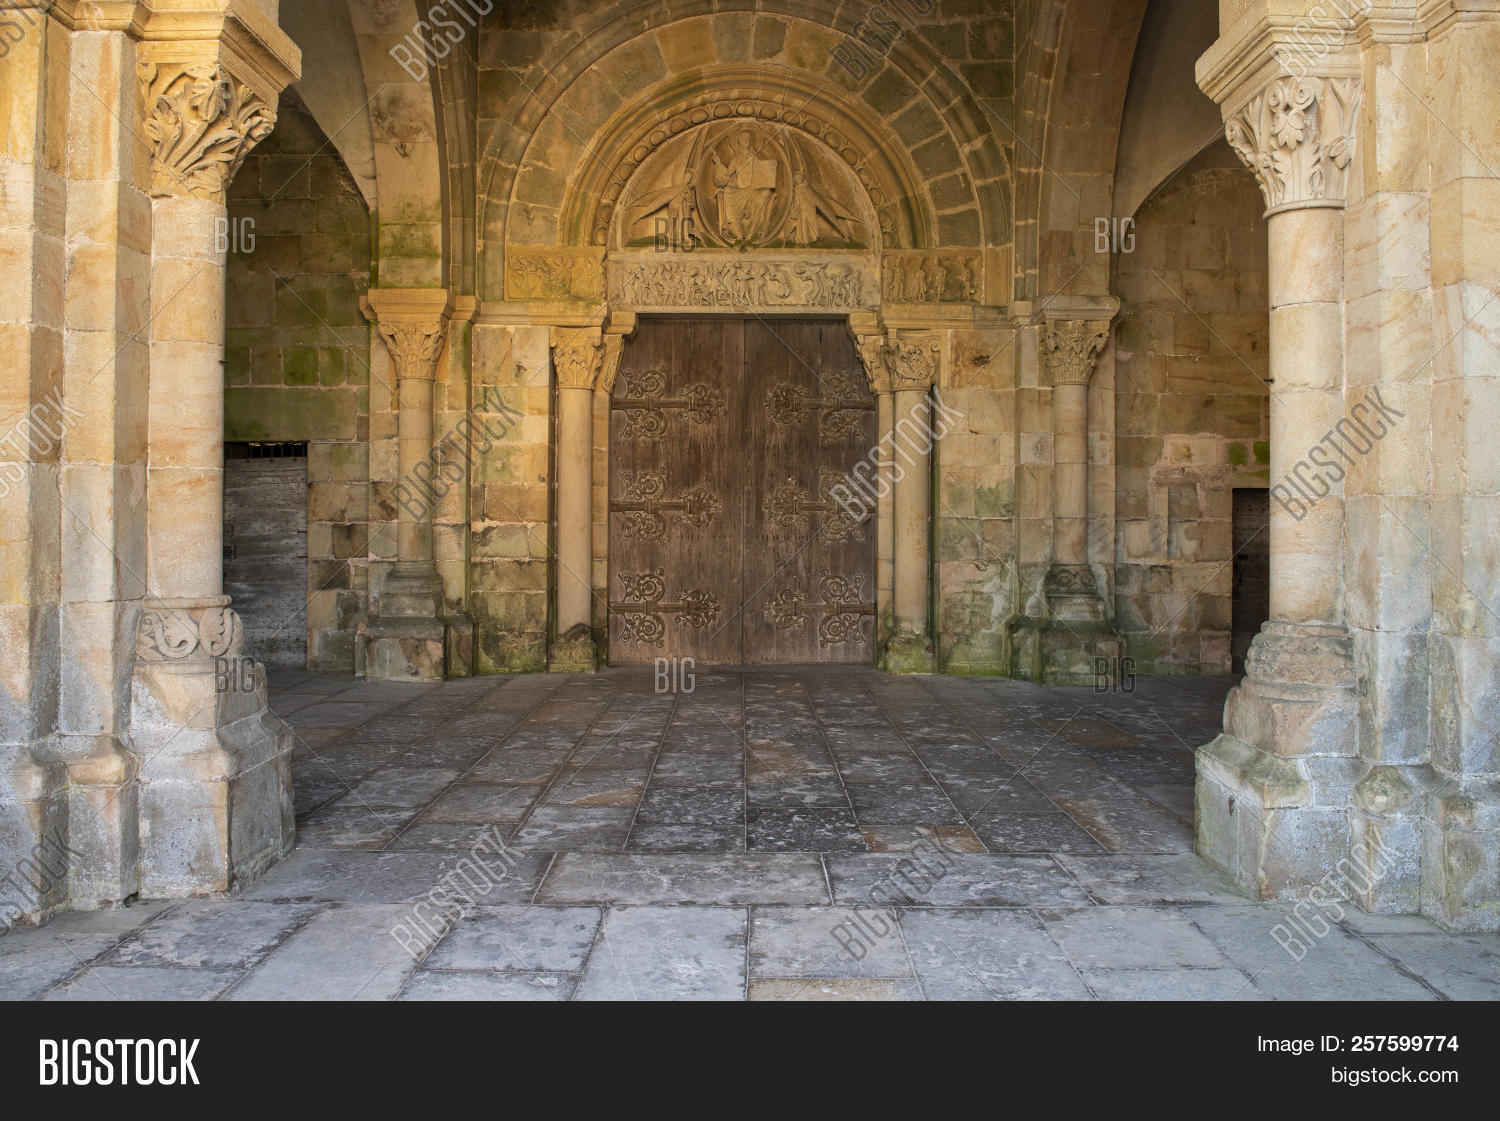 Pierre Bourgogne Romanesque Church Image Photo Free Trial Bigstock